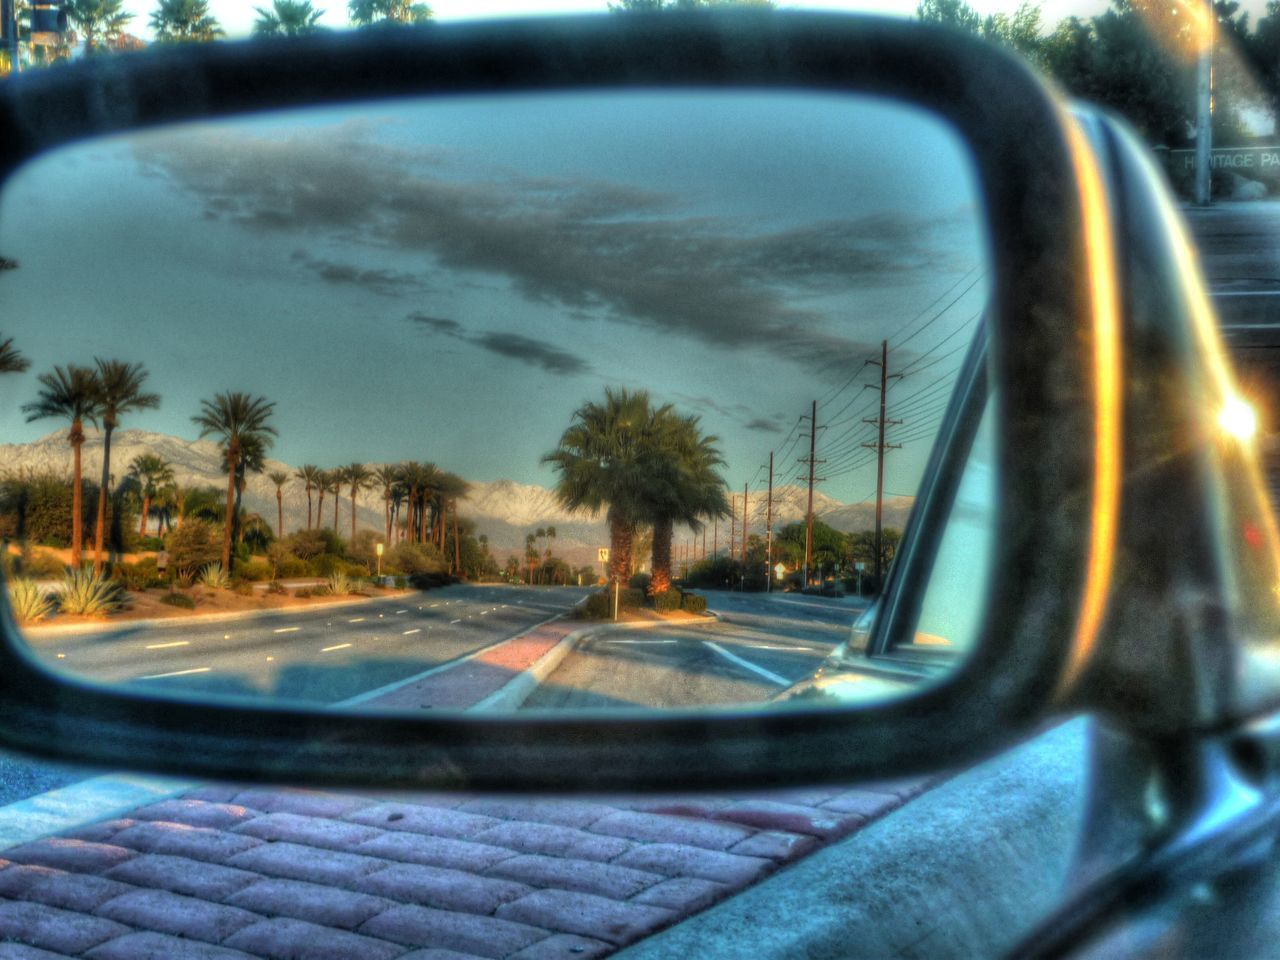 car, transportation, side-view mirror, reflection, tree, land vehicle, sky, car interior, windshield, window, road, day, no people, vehicle mirror, outdoors, nature, close-up